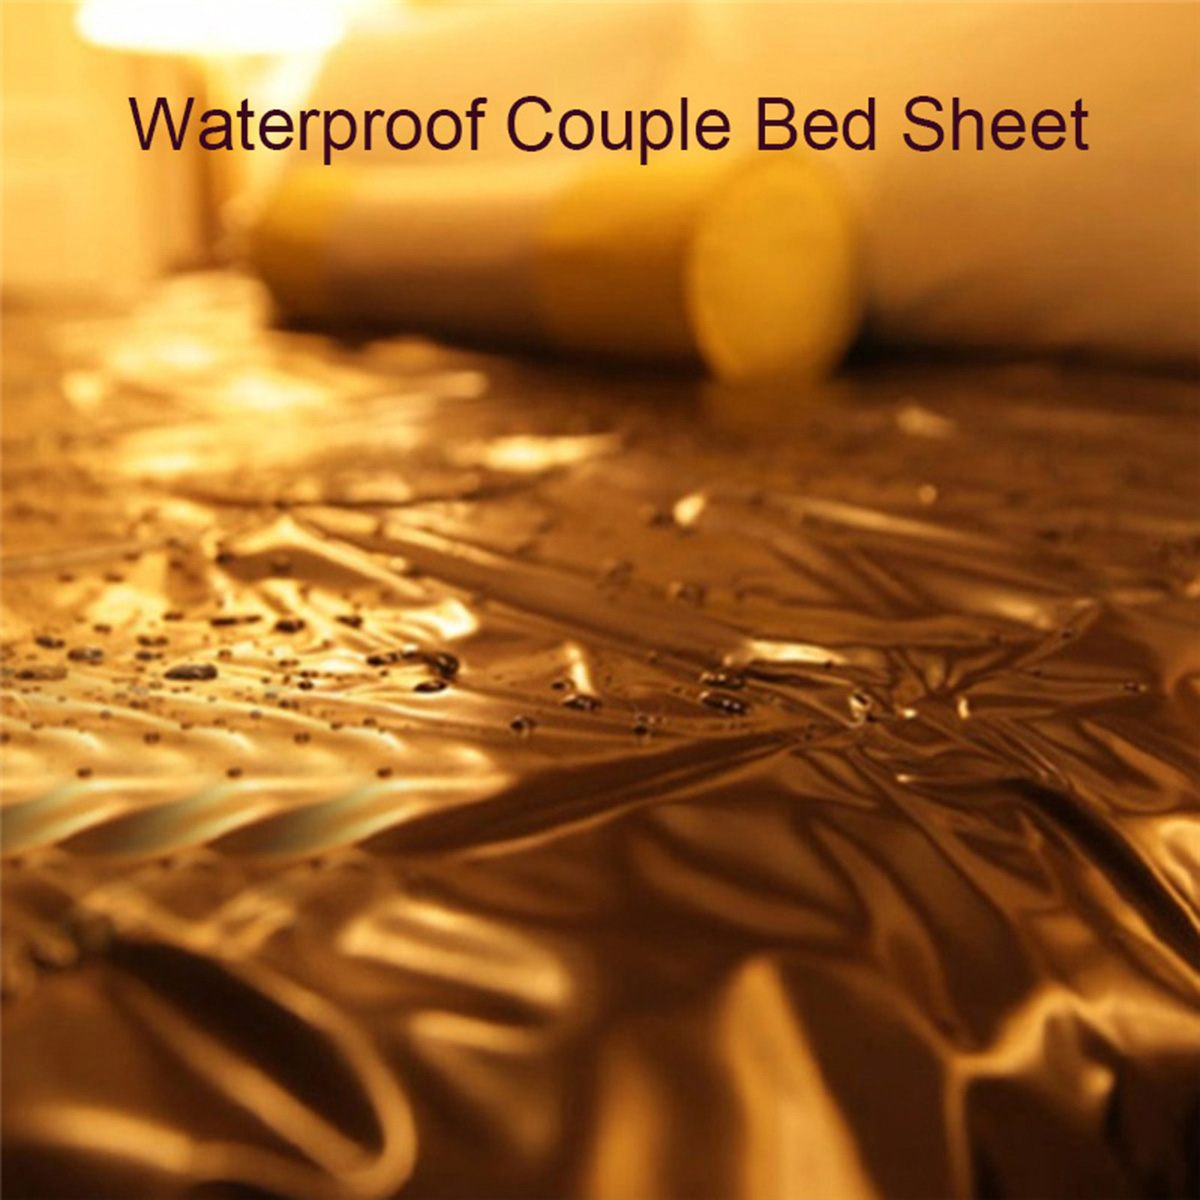 Waterproof Adult Sex Bed <font><b>Sheets</b></font> <font><b>PVC</b></font> Vinyl Mattress Cover Allergy Relief Bed Bug Hypoallergenic Sex Toys Game for Couples Gay image